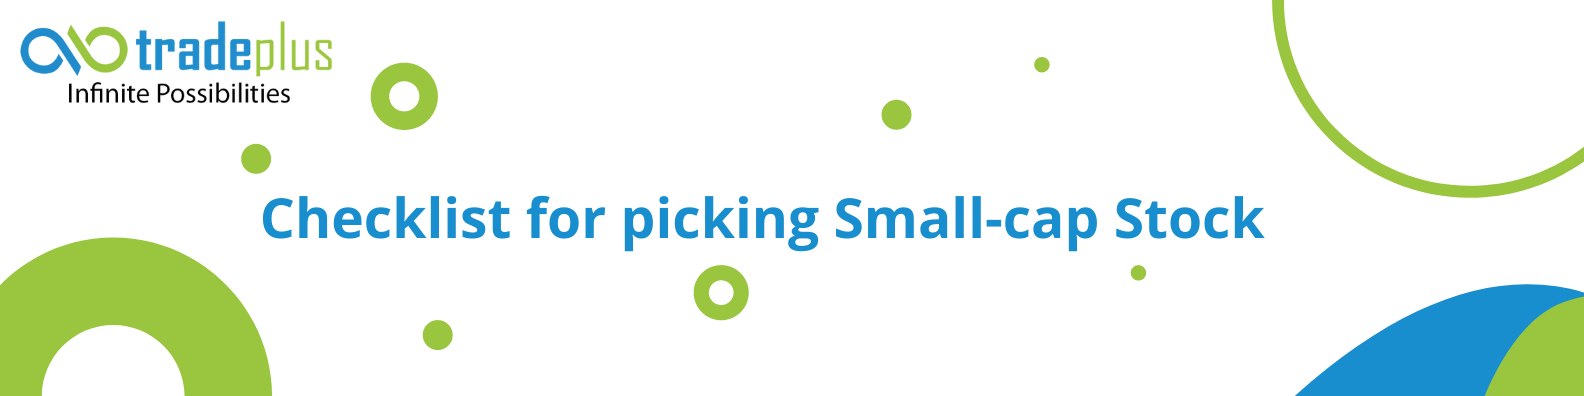 Checklist for picking Small cap Stock 1 10 Point Checklist for picking a small cap stock